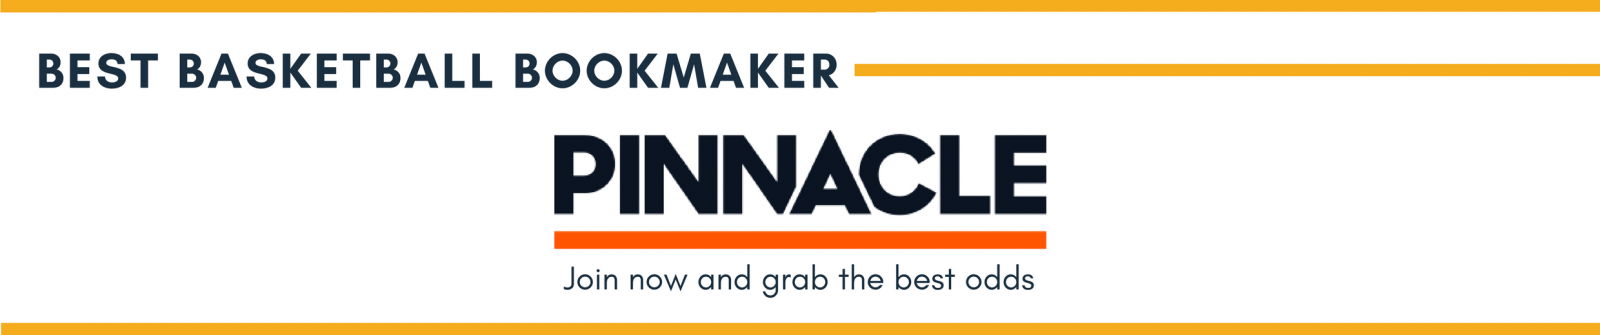 Best basketball bookmaker Pinnacle